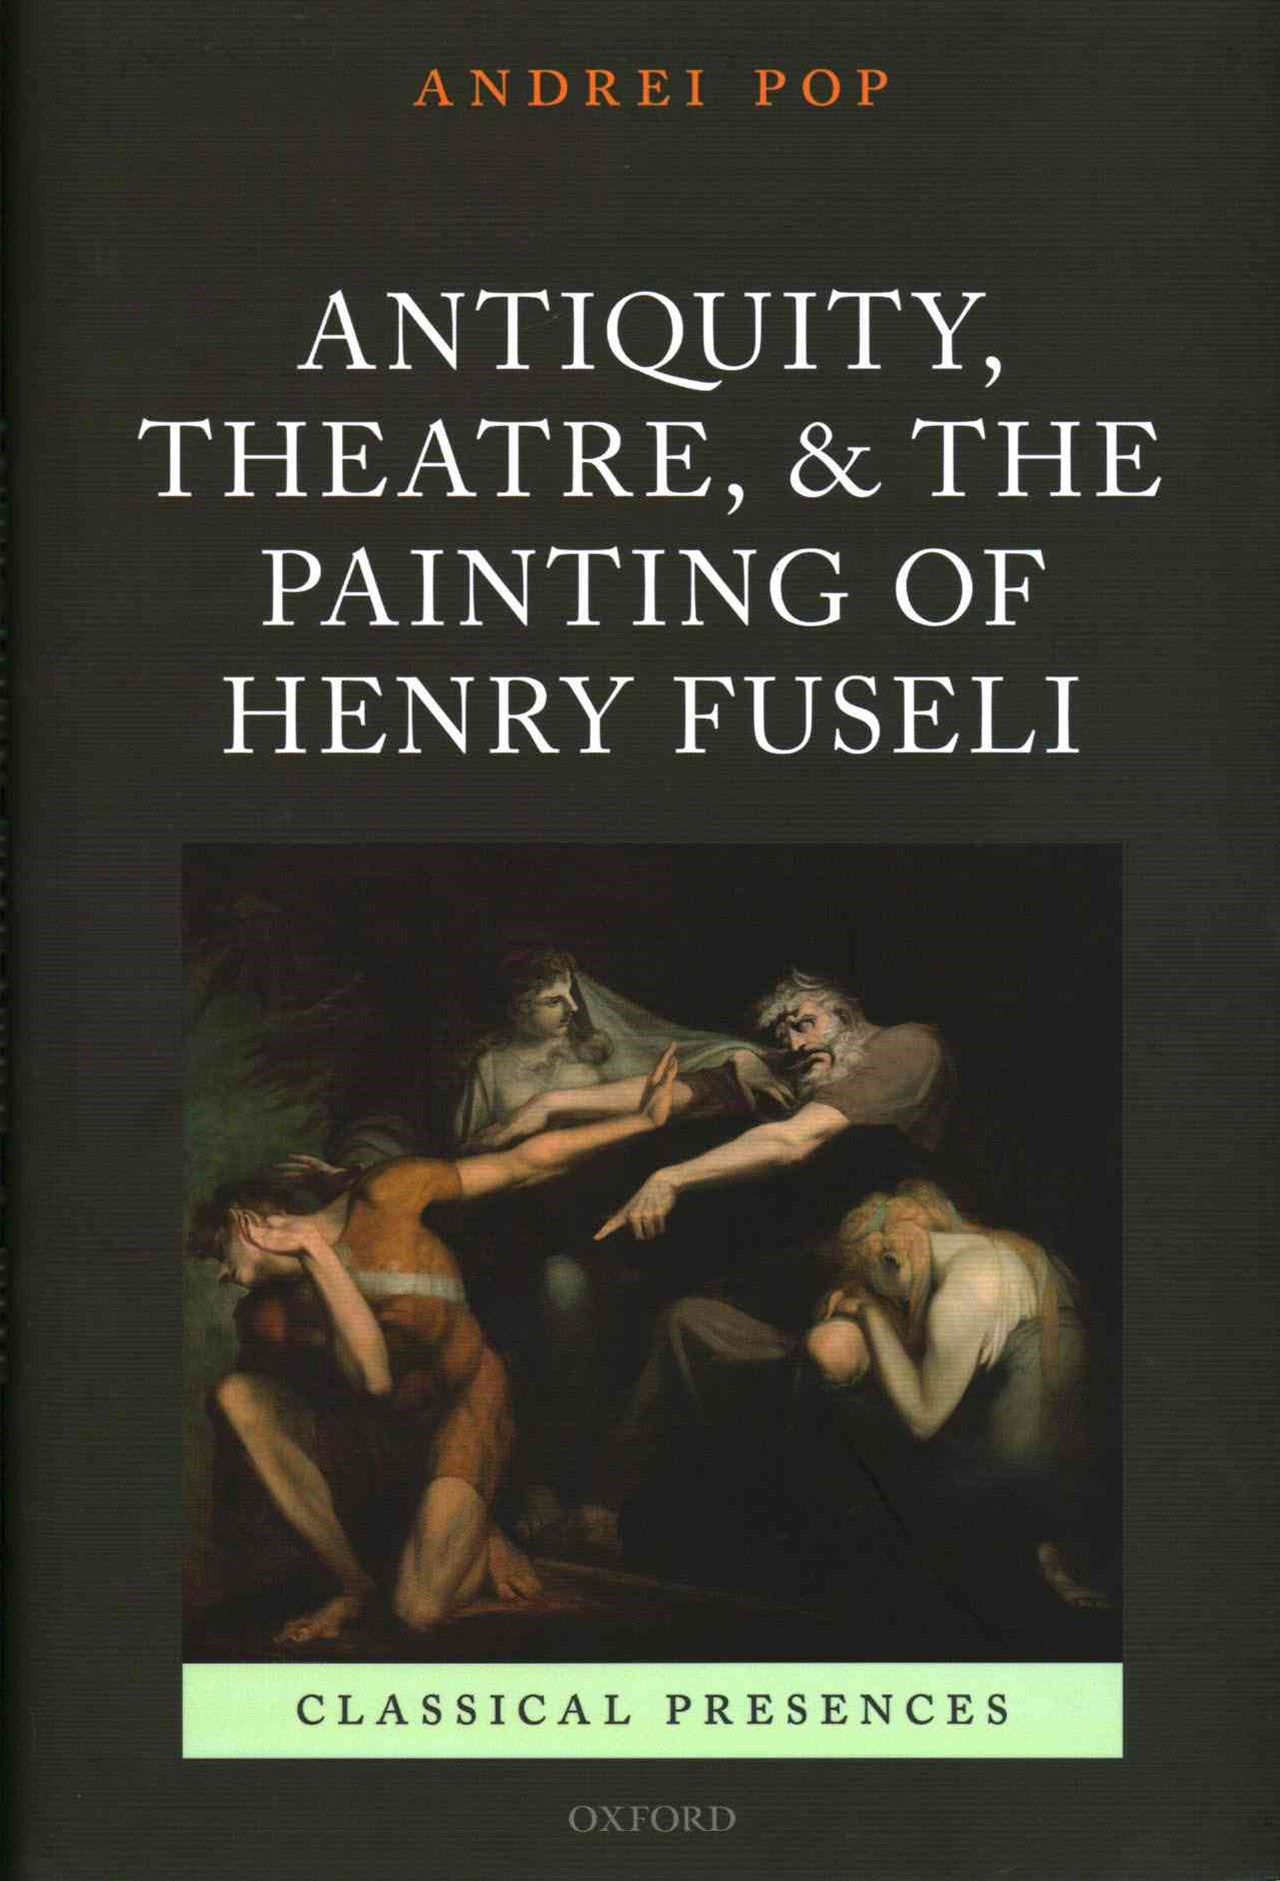 Antiquity, Theatre, and the Painting of Henry Fuseli